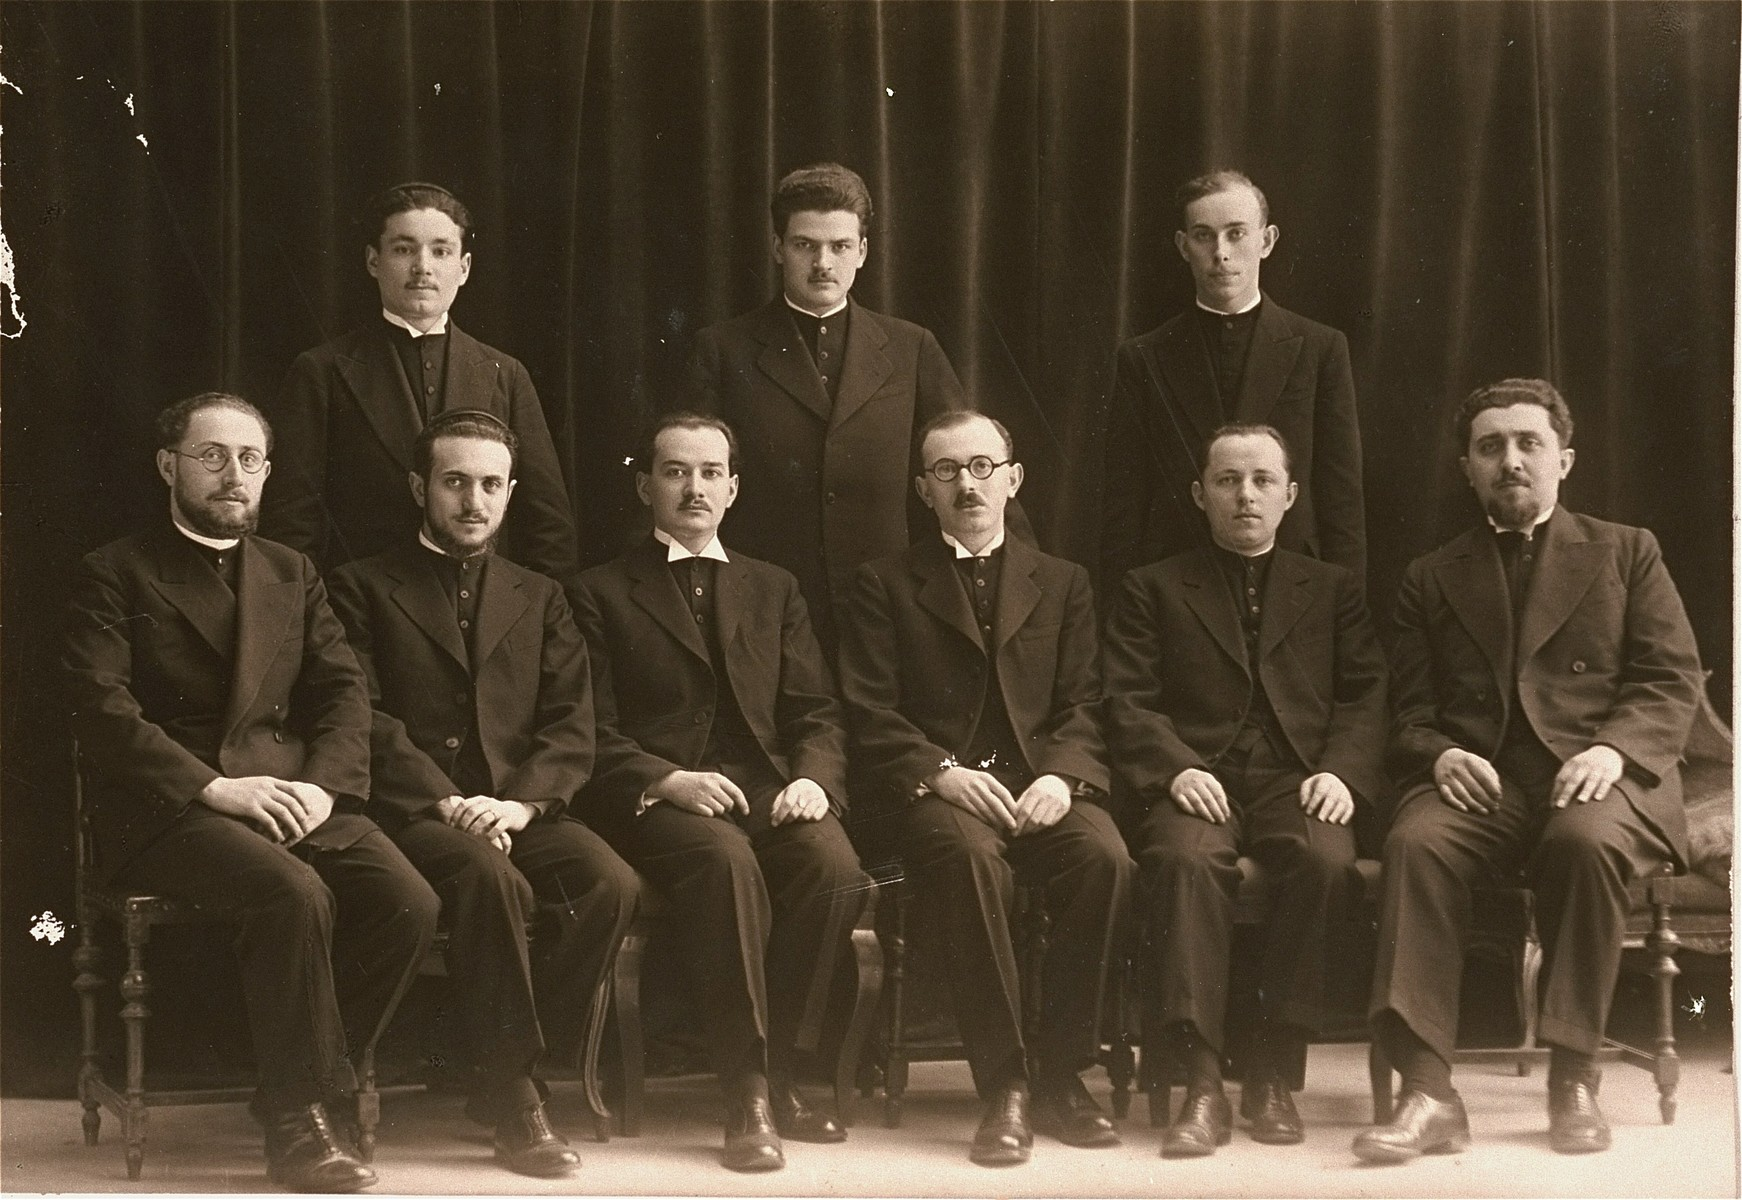 Group portrait of young Hungarian rabbis.    Among those pictured is Joszef Katona (seated, third from the left), the future chief rabbi of the Dohany synagogue in Budapest.  Also pictured are seated: Jeno Racz (second from the right) and Marton Nathan (far right); standing: Marton Revesz (middle) and Karoly Jolesz (right).